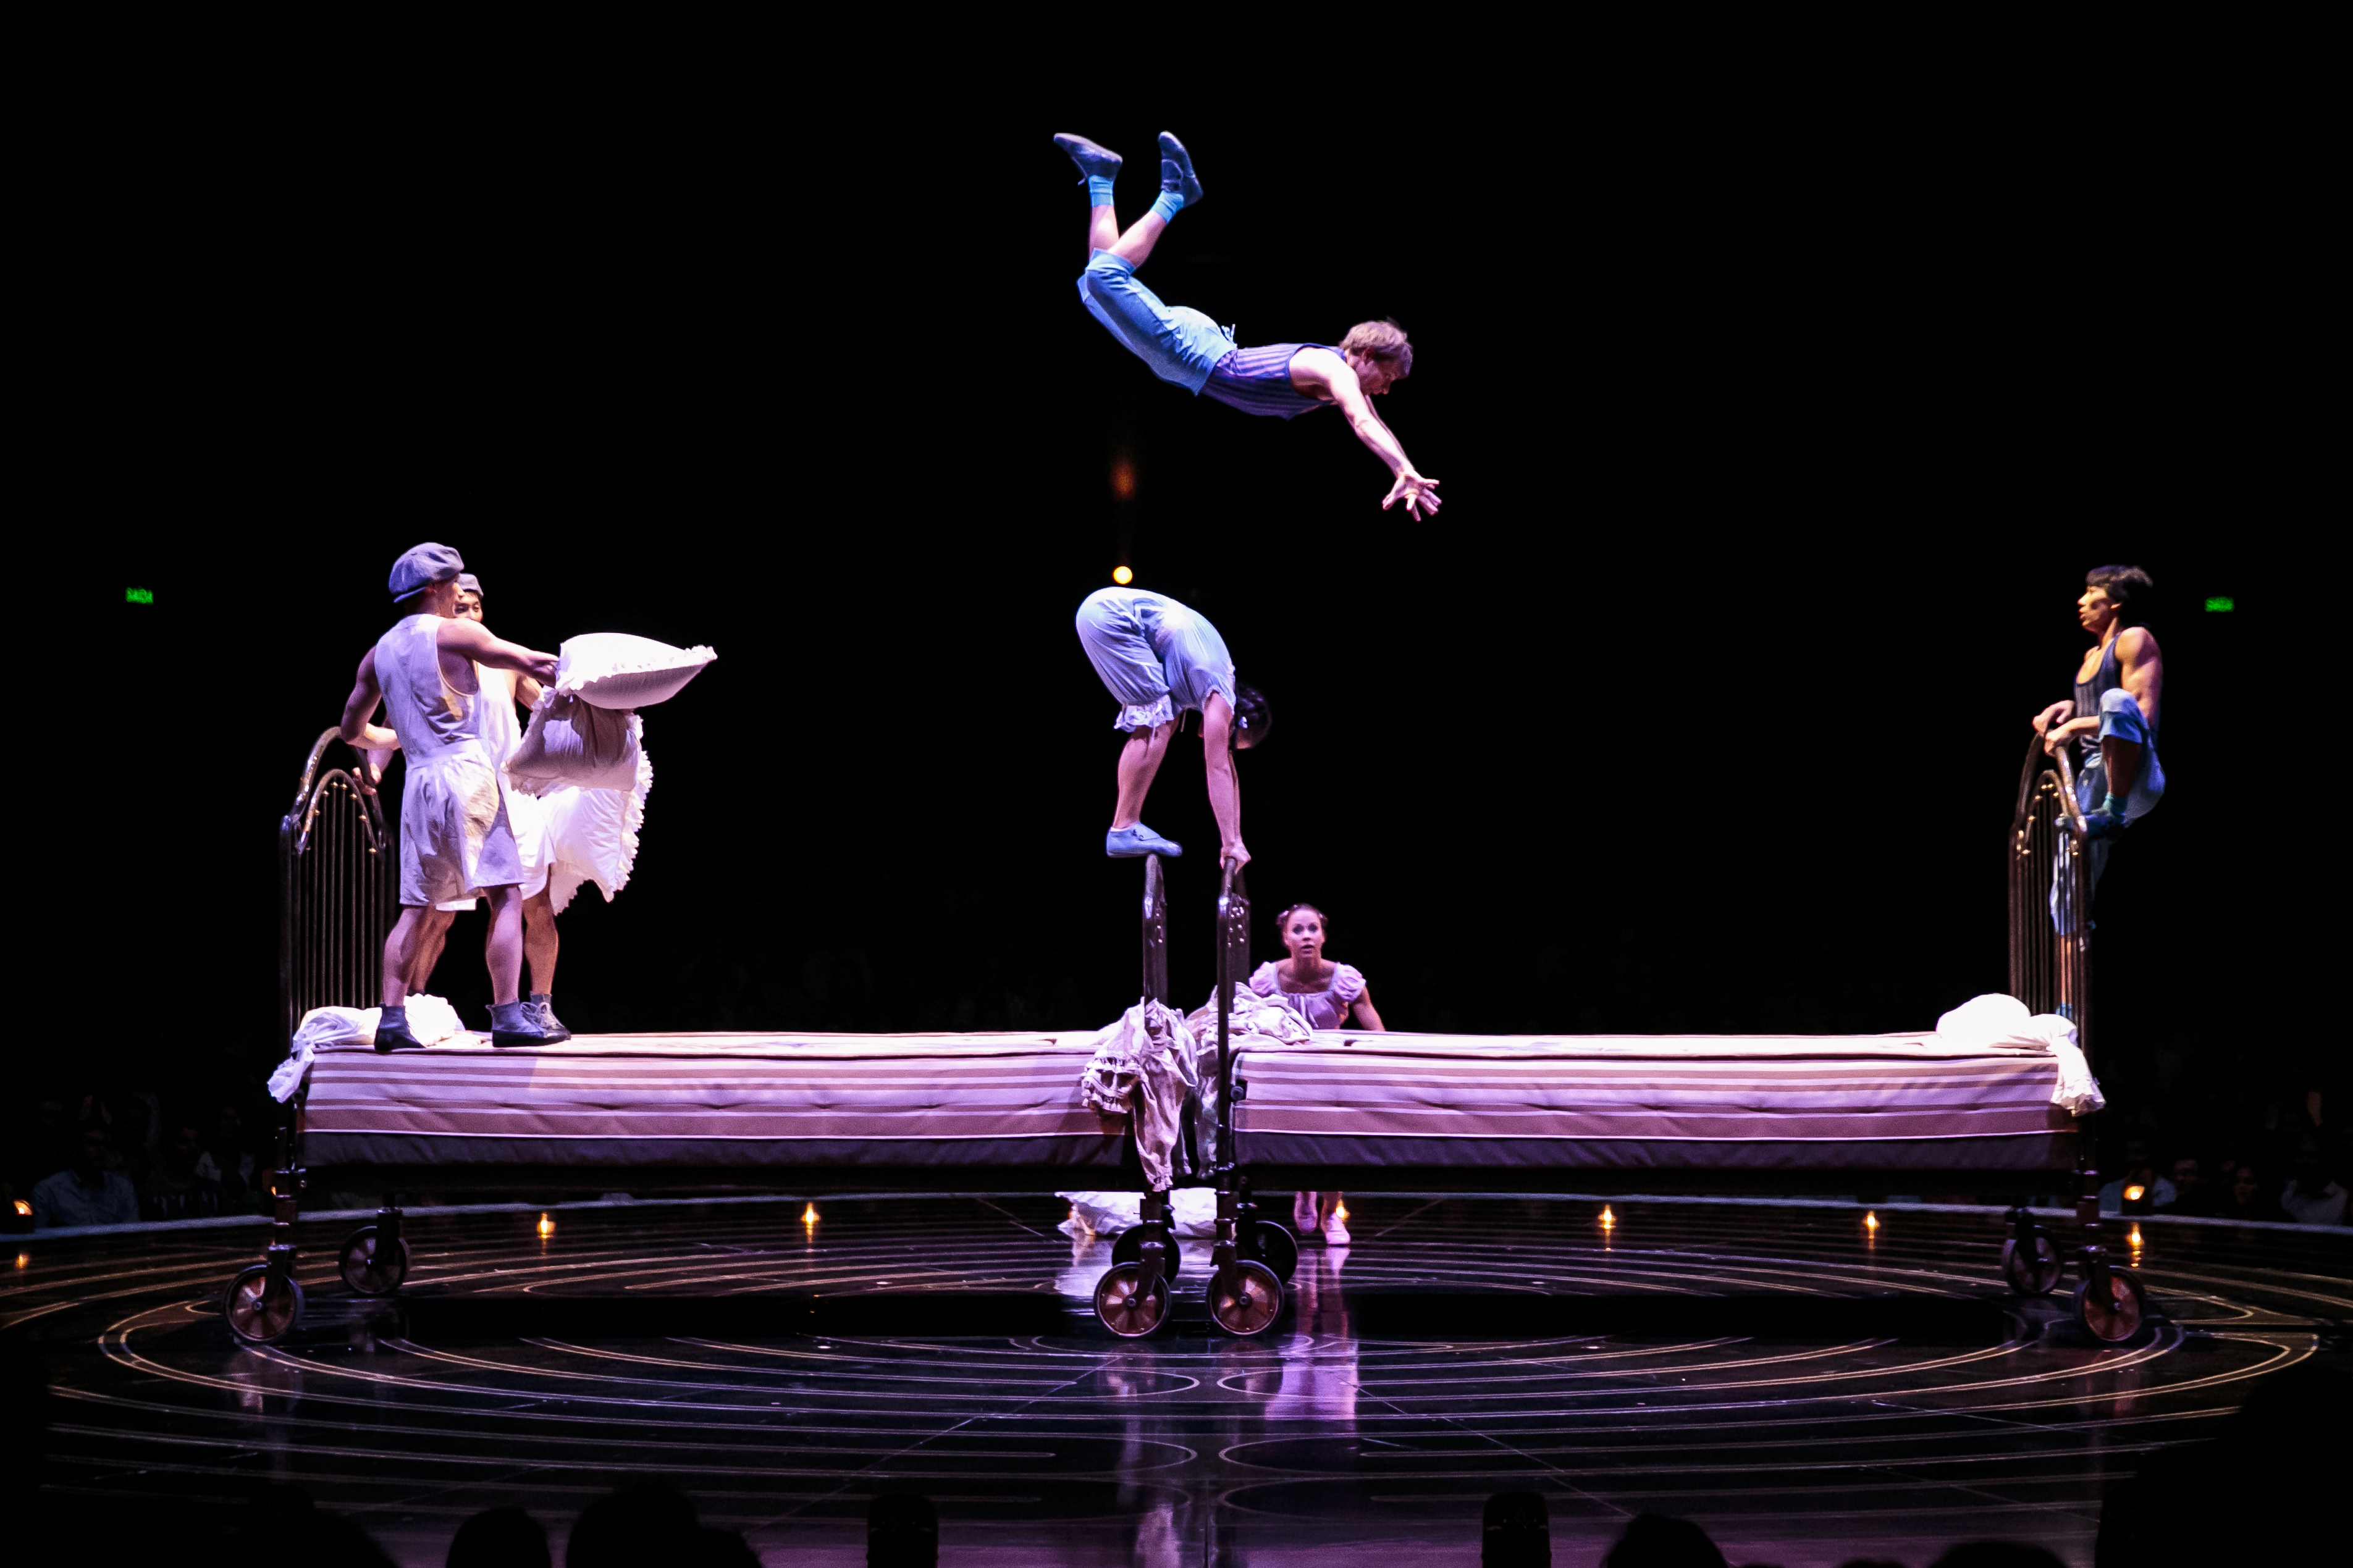 The trampoline act. Photo courtesy of Cirque du Soleil.